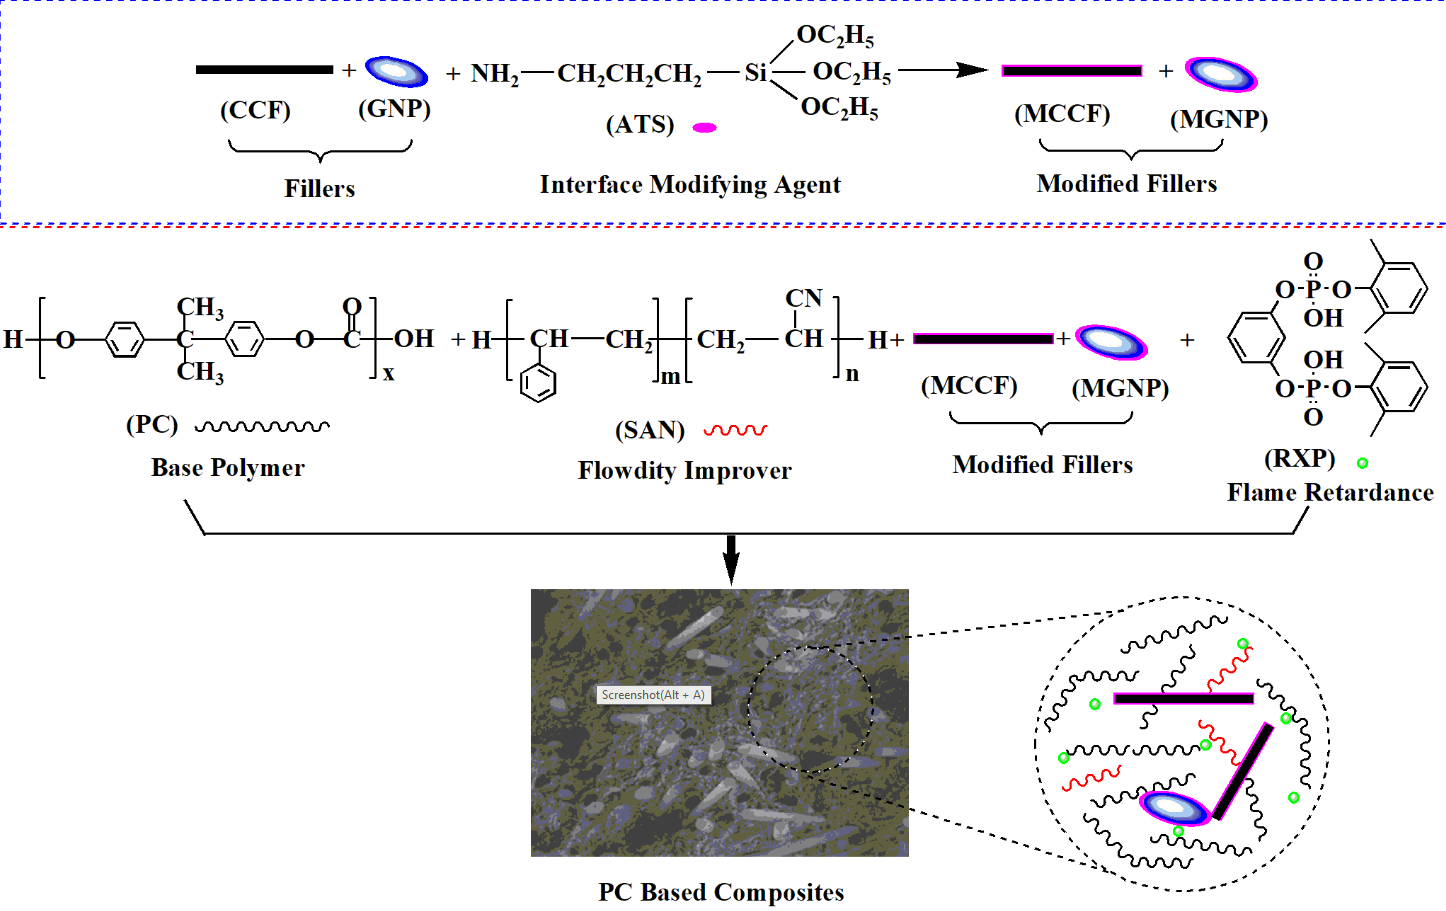 Effects of Functional Additives on Structure and Properties of Polycarbonate-Based Composites Filled with Hybrid Chopped Carbon Fiber/Graphene Nanoplatelet Fillers